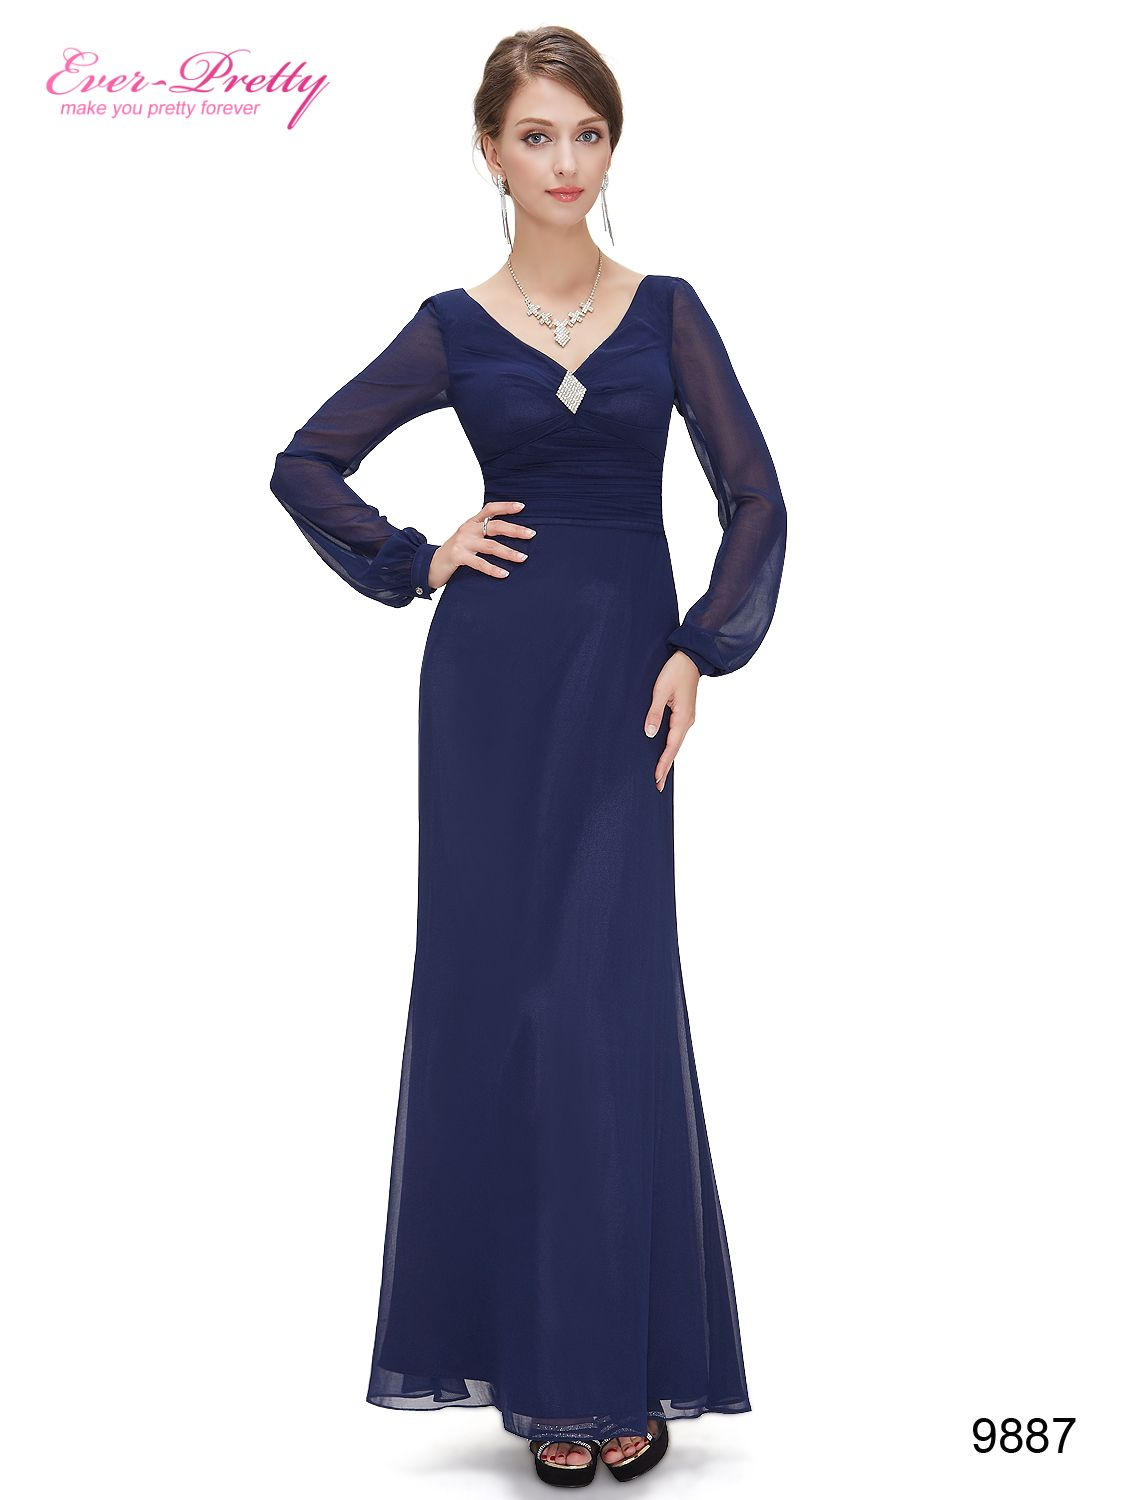 Engrossing Dresses Resort Party Dresses Sheer Long Sleeve Ruched Waist Diamante Long Evening Dress Ever Dresses Ebay Ever Dresses Size 18 wedding dress Ever Pretty Dresses